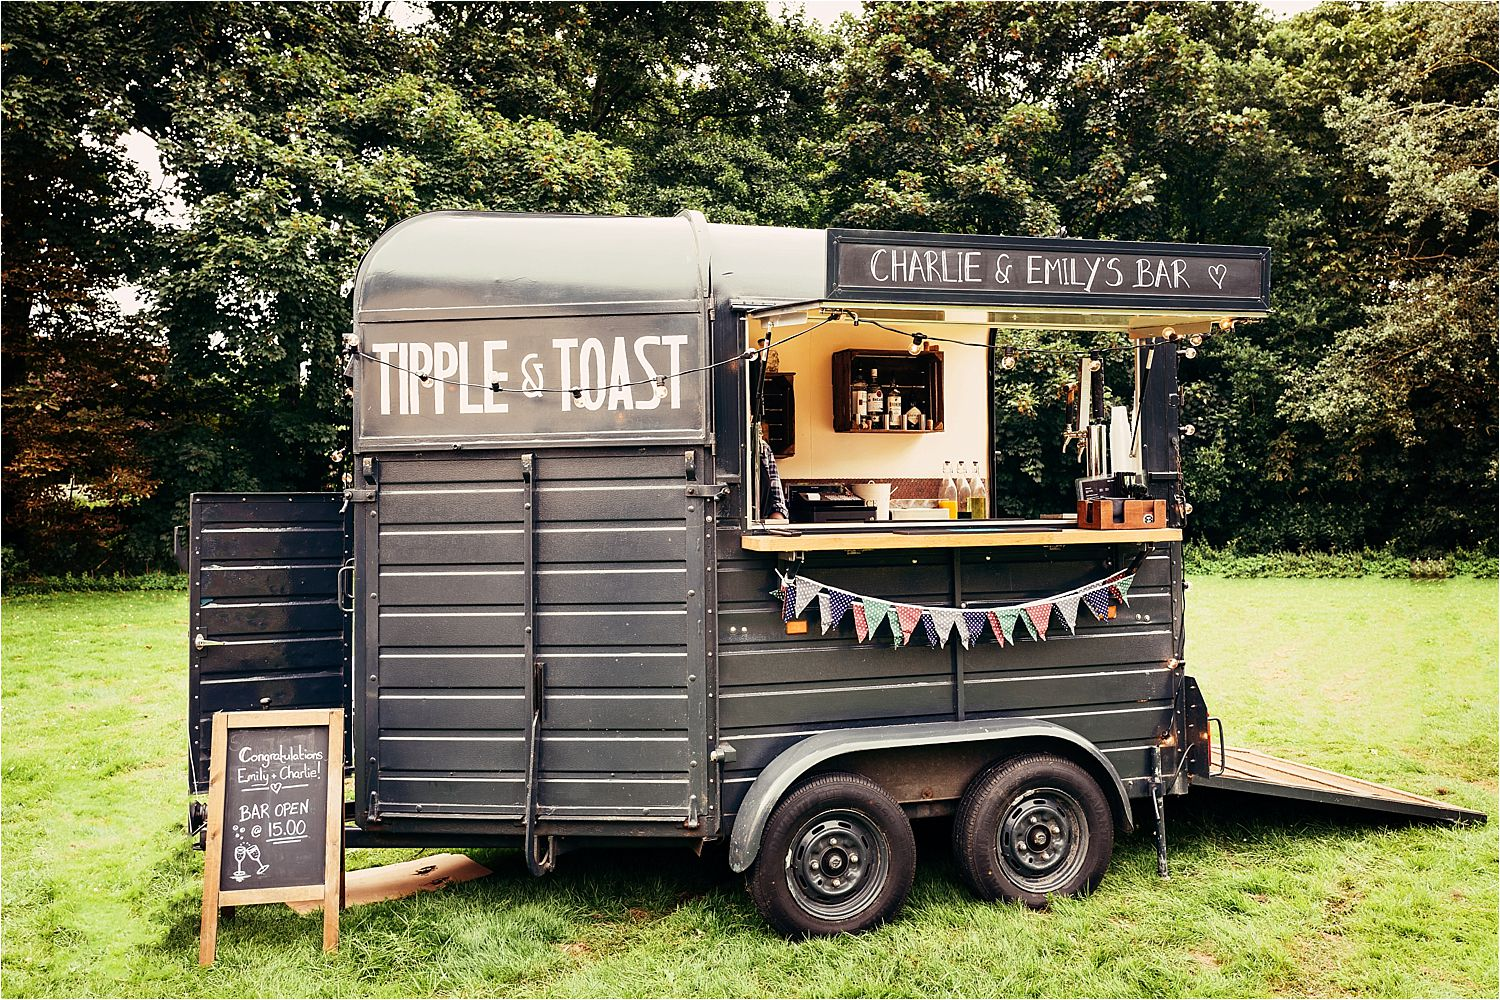 Horse box bar by Tipple and Toas at Bedfordshire tipi wedding